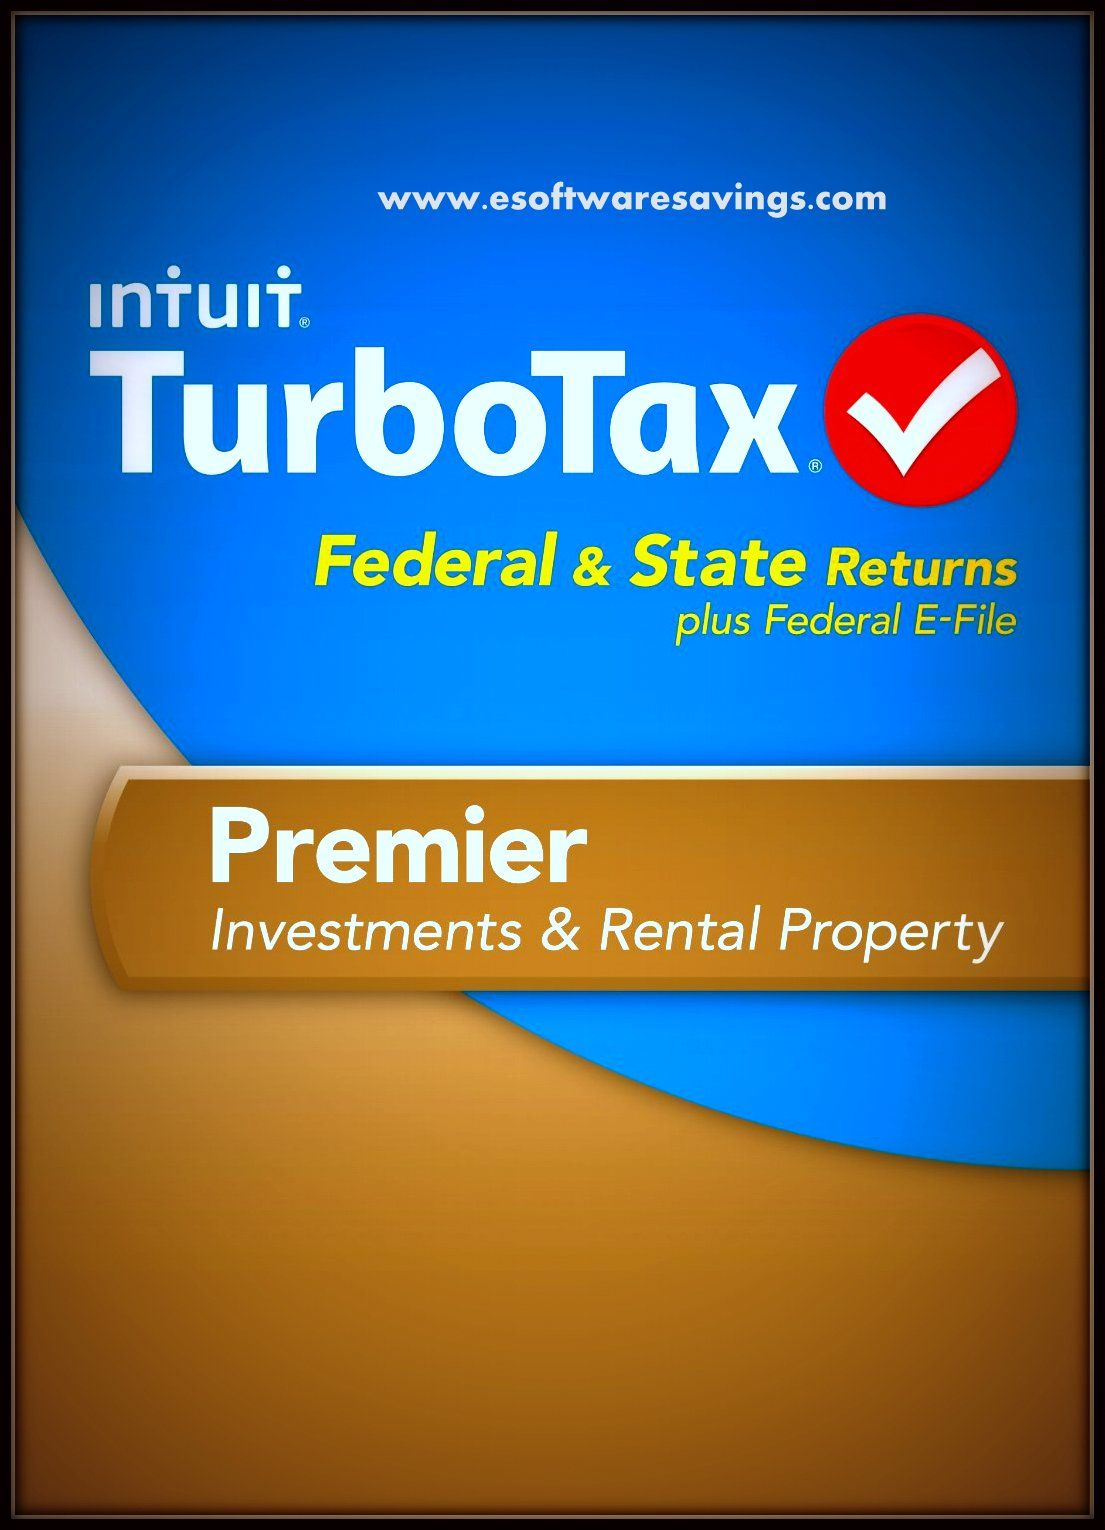 When you are very near to the tax deadline, TurboTax is